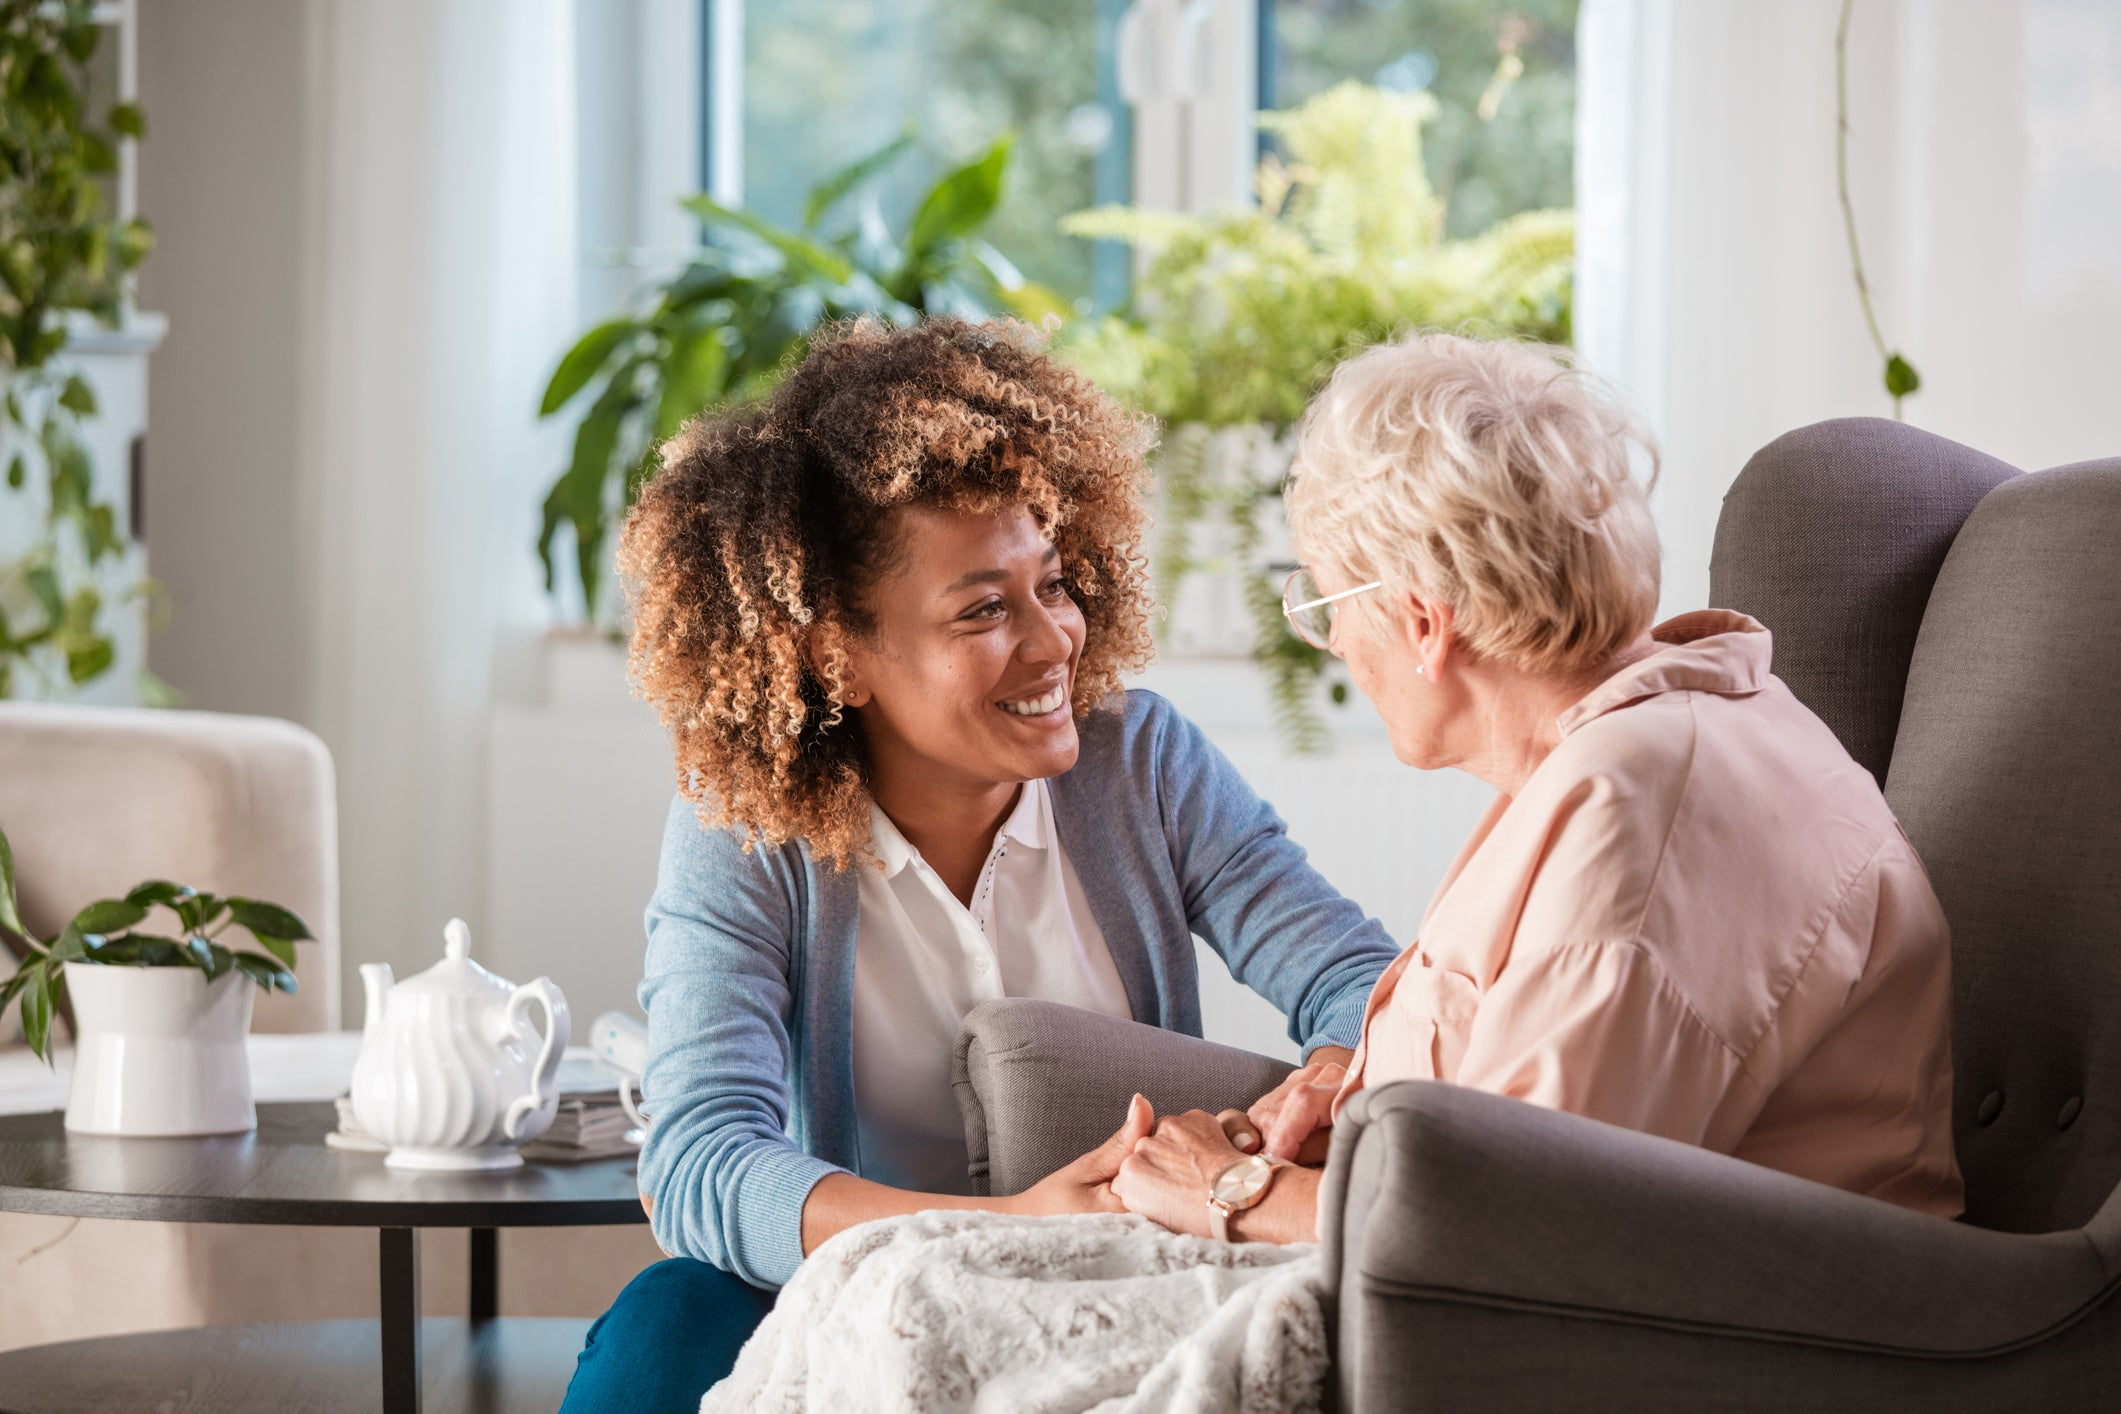 Returning to Normal: In-Home Care for Older Adults